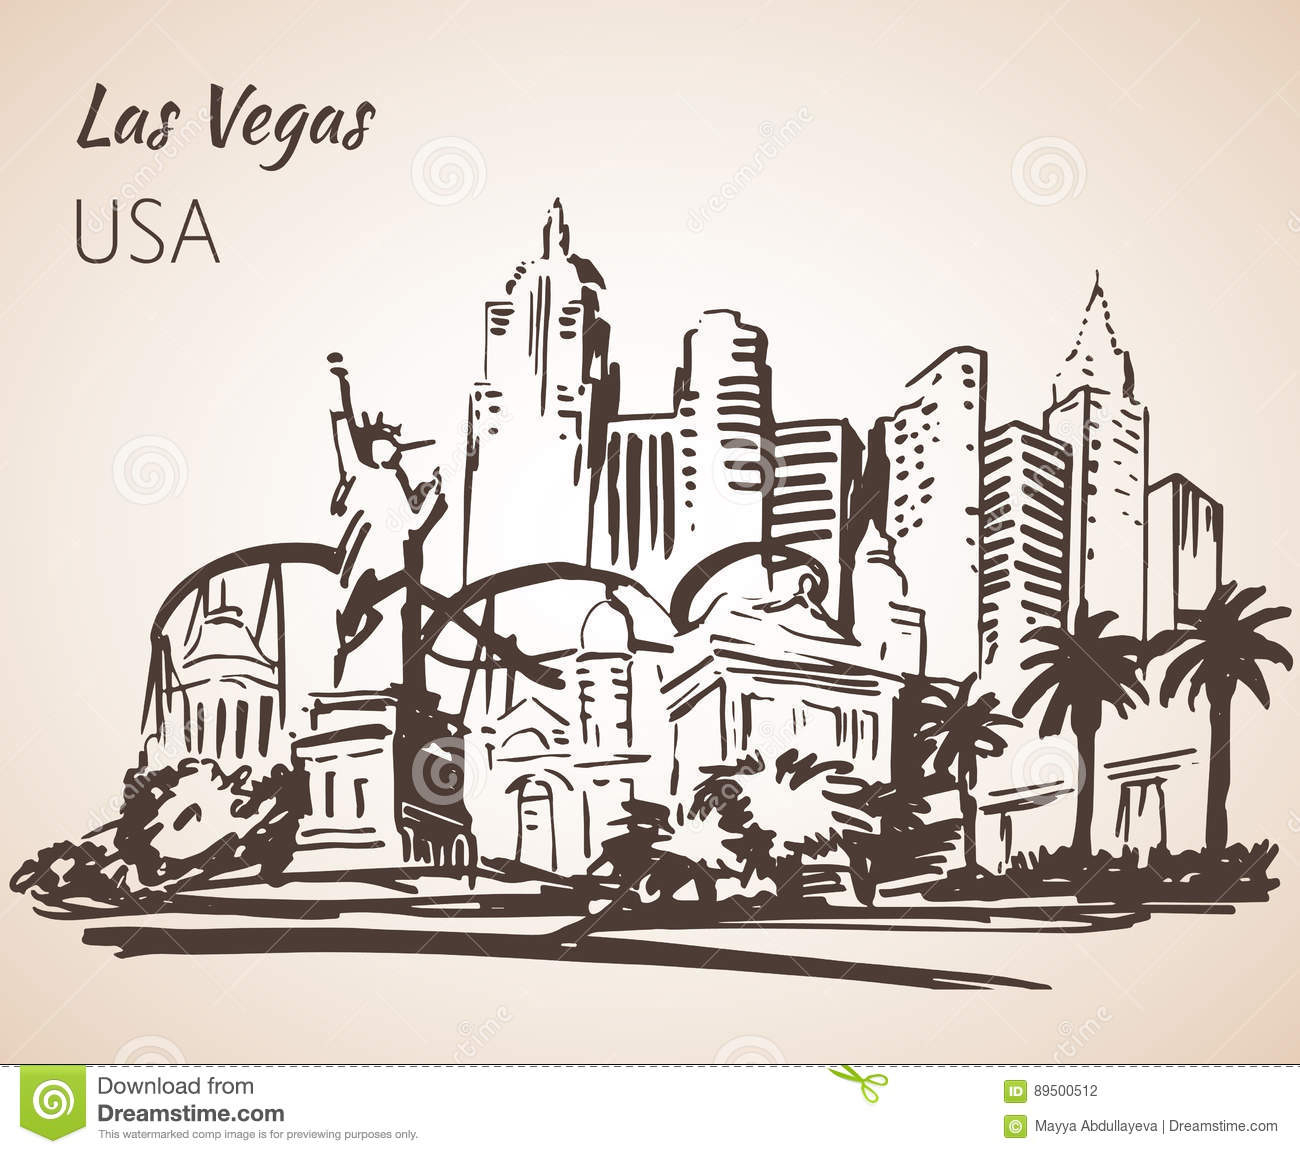 Las vegas clipart sketch. Sign drawing and